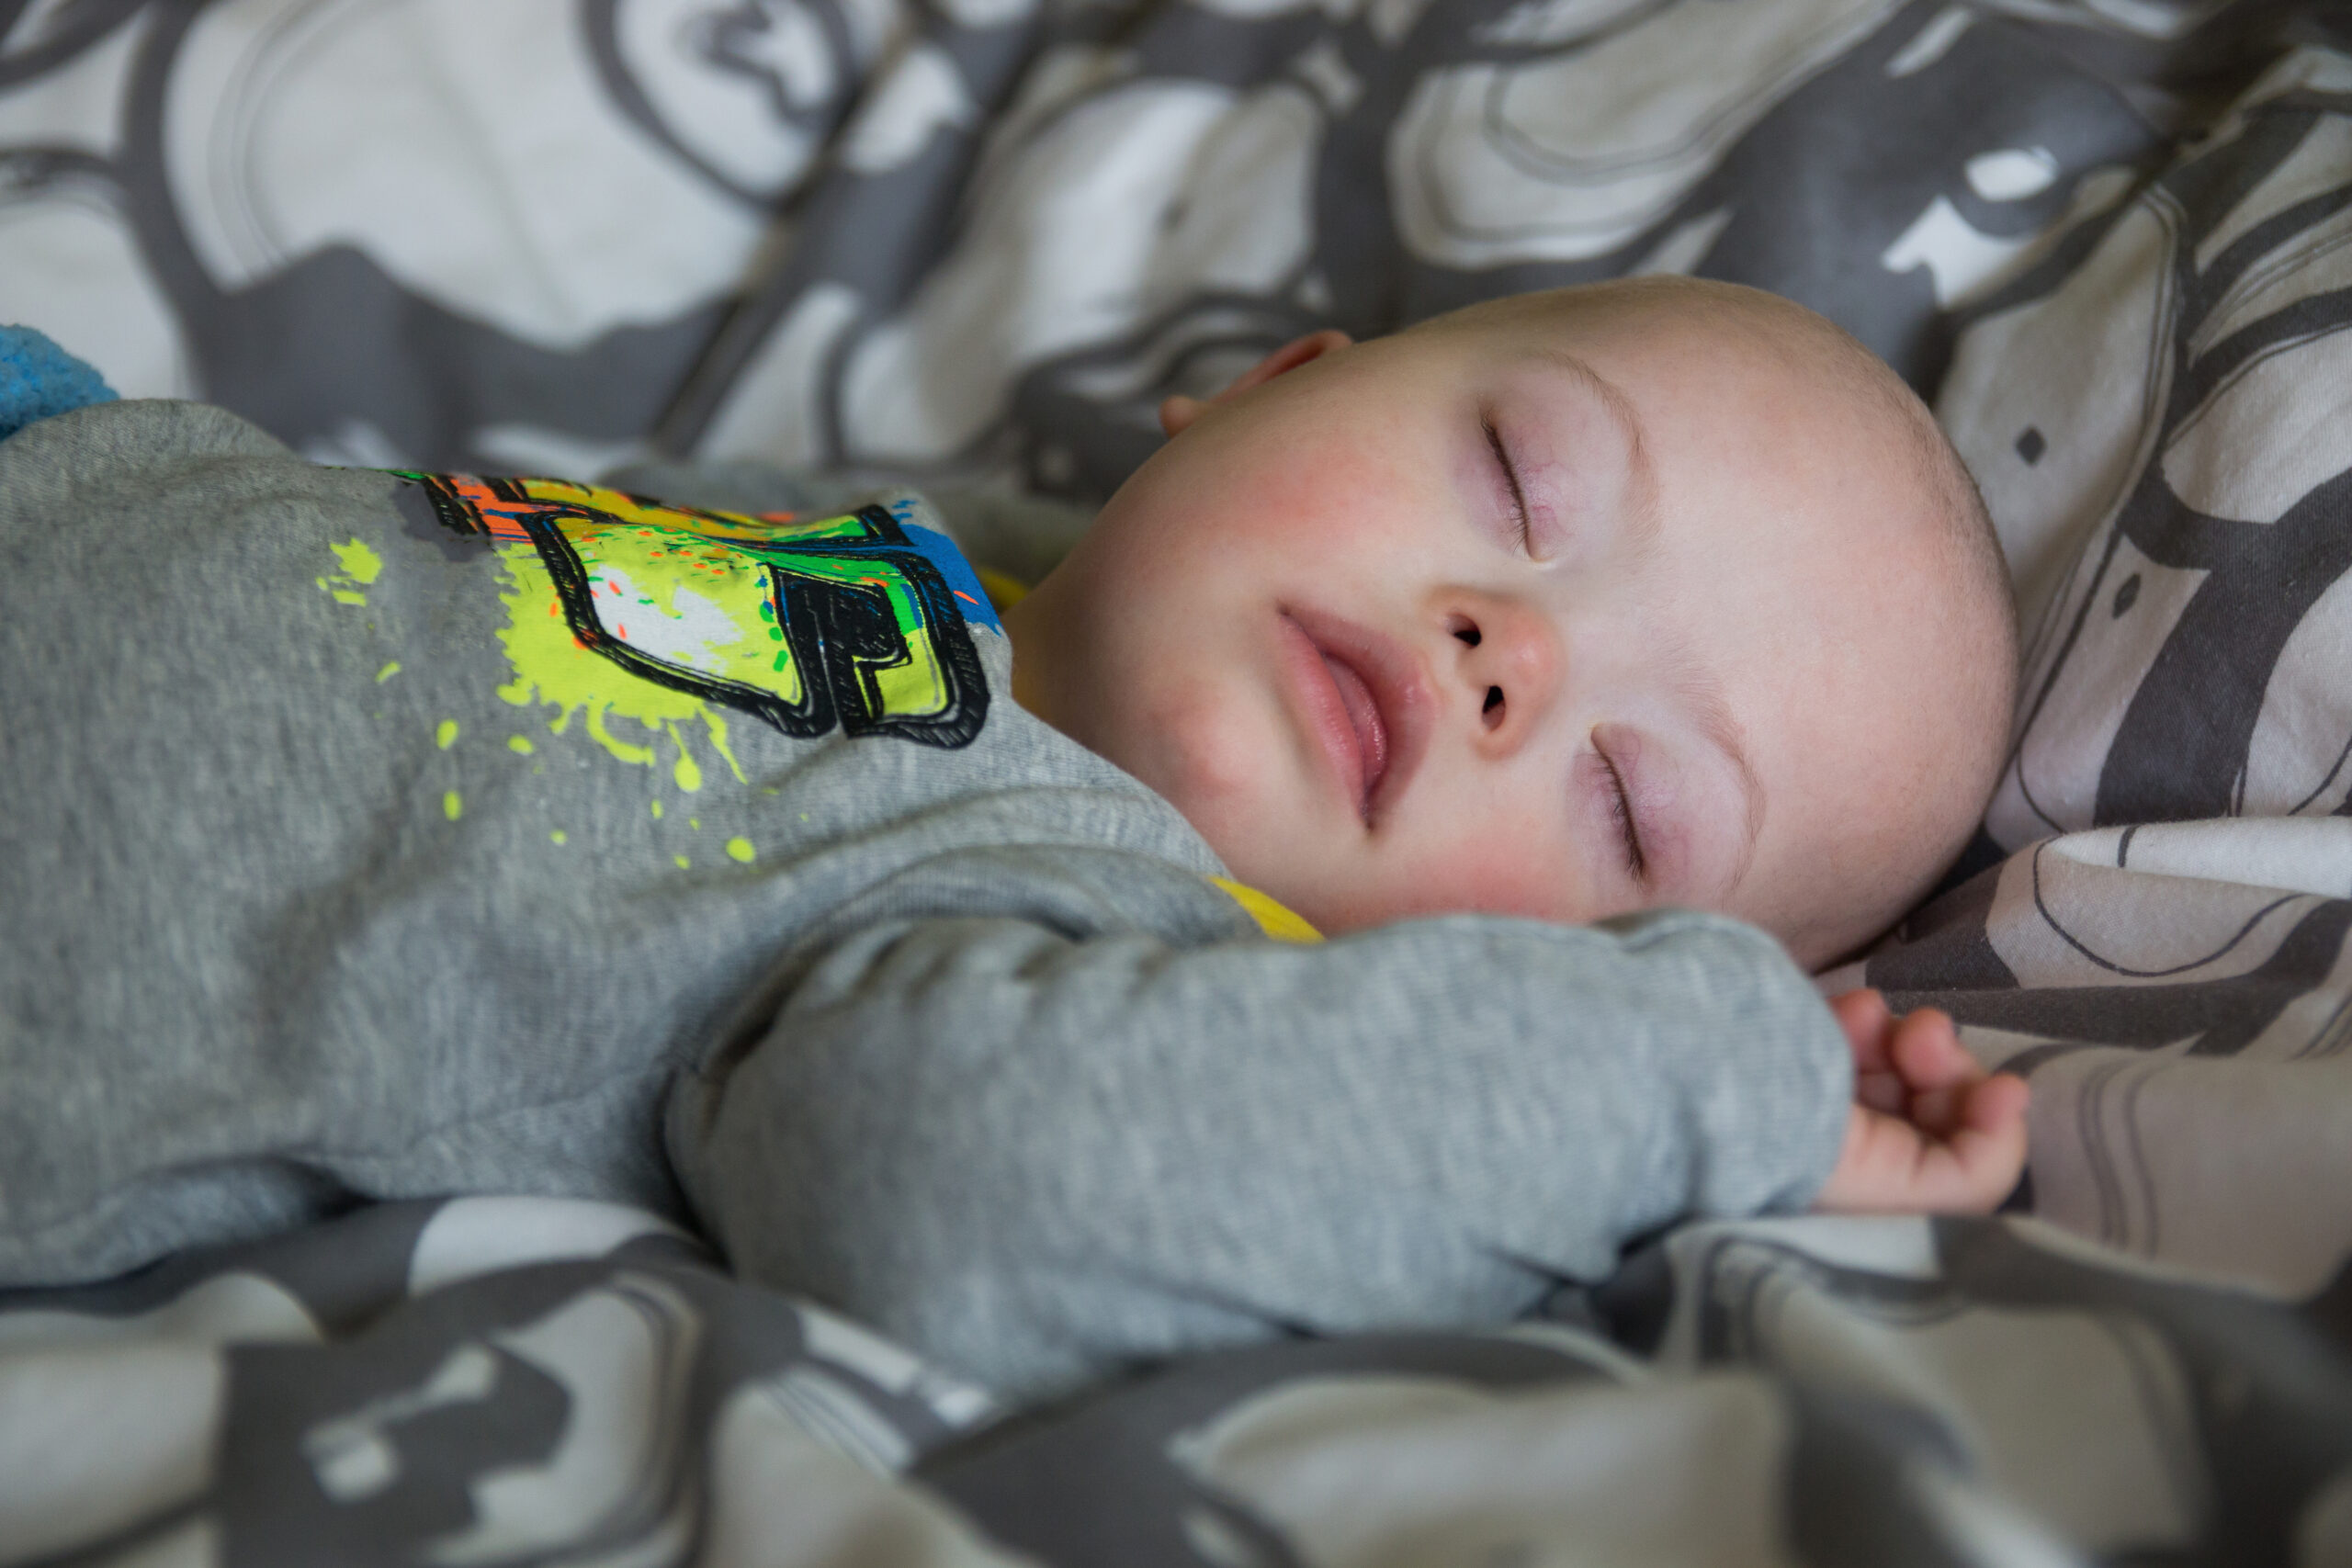 Cute baby boy with Down syndrome sleeping on the bed in home bedroom